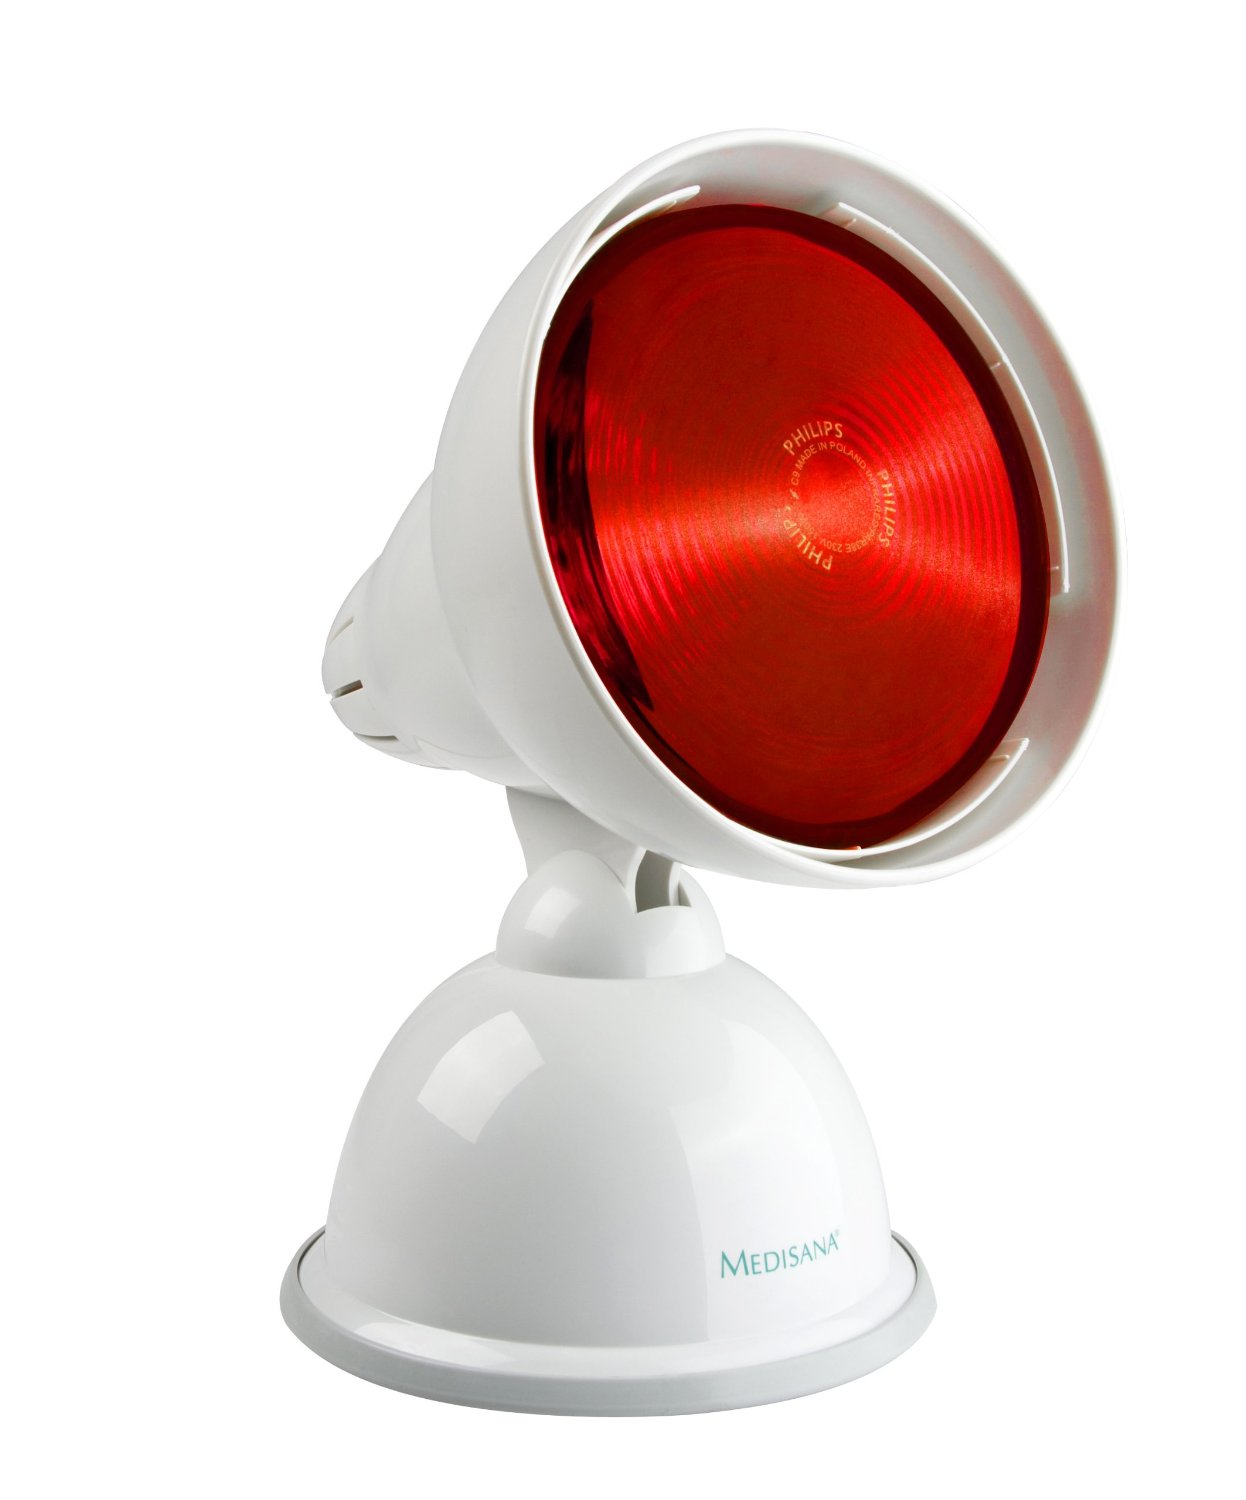 Medisana Pain Relief Muscle Aches & Common Colds IRL Infra red Lamp White 150 W